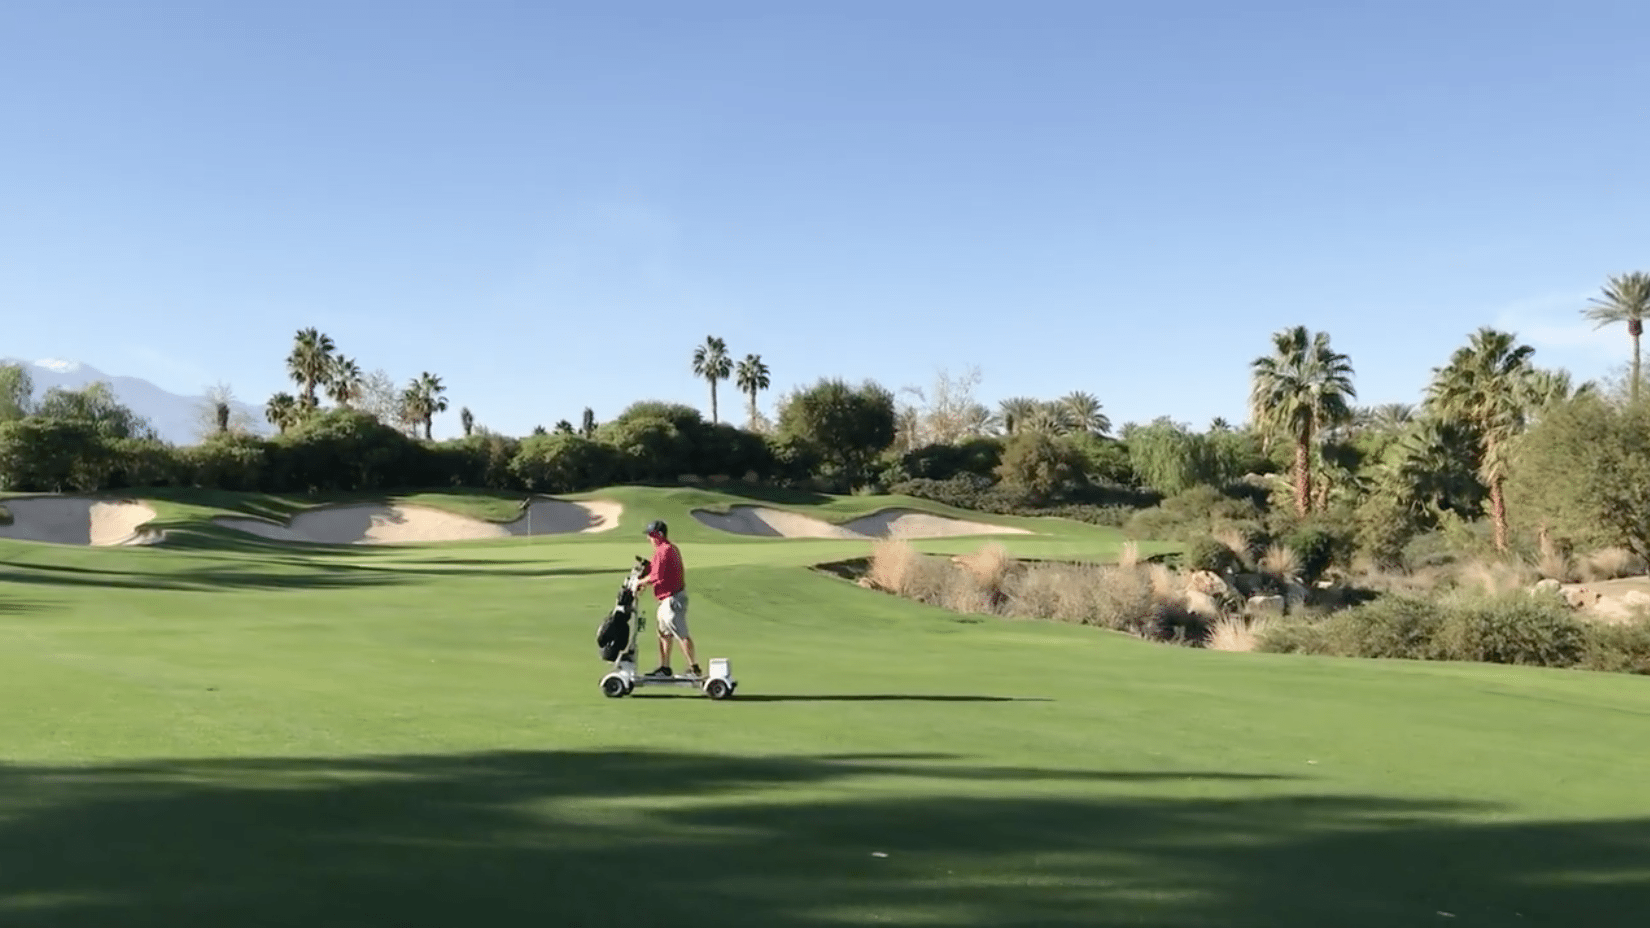 GolfBoard Video at Indian Wells Golf Resort